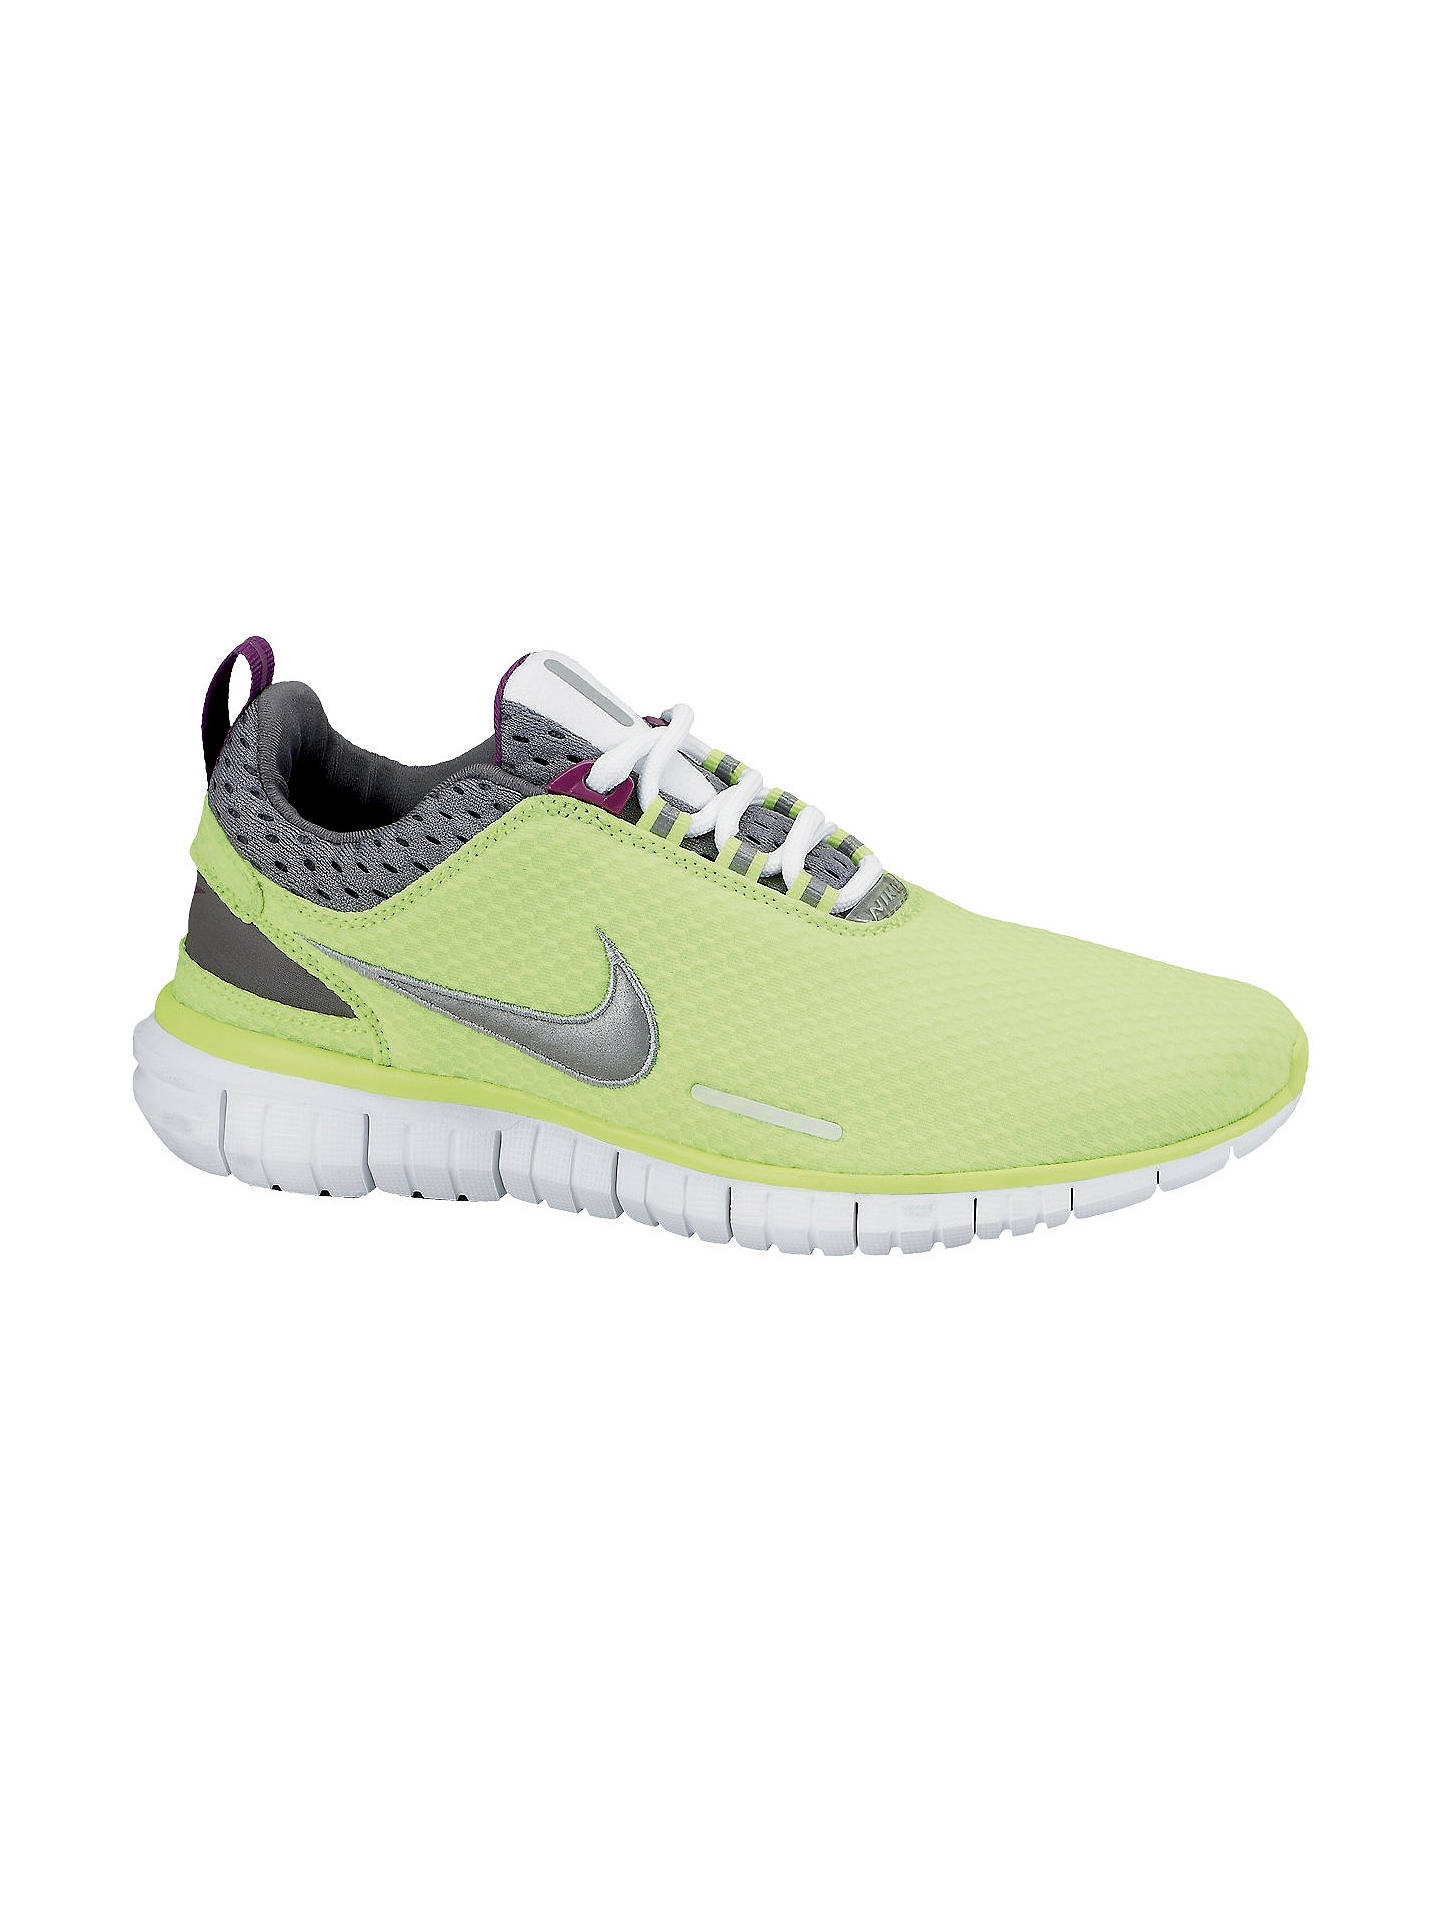 promo code 78f1a c4556 Buy Nike Free OG Breathe Women s Running Shoes, Yellow, 3 Online at  johnlewis.